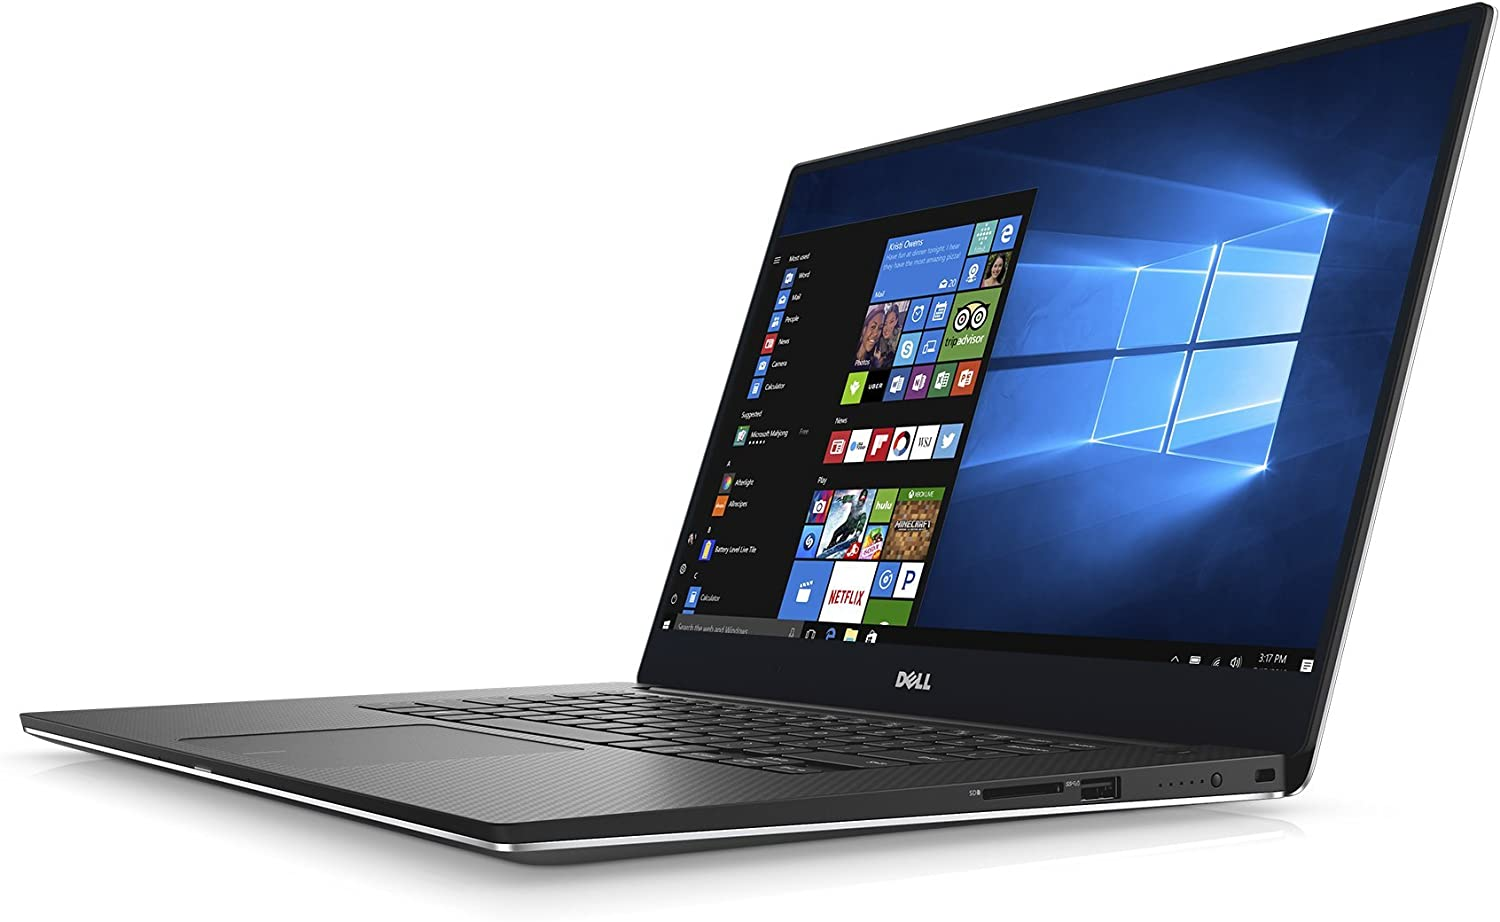 Dell XPS Thin and Light Laptop - 15 15.6in 4K Touch Display, Intel Core i7-7700HQ, 16 GB RAM, 1 TB SSD, GTX 1050, Aluminum Chassis, Silver - XPS9560-7369SLV-PUS - Gaming (Renewed)